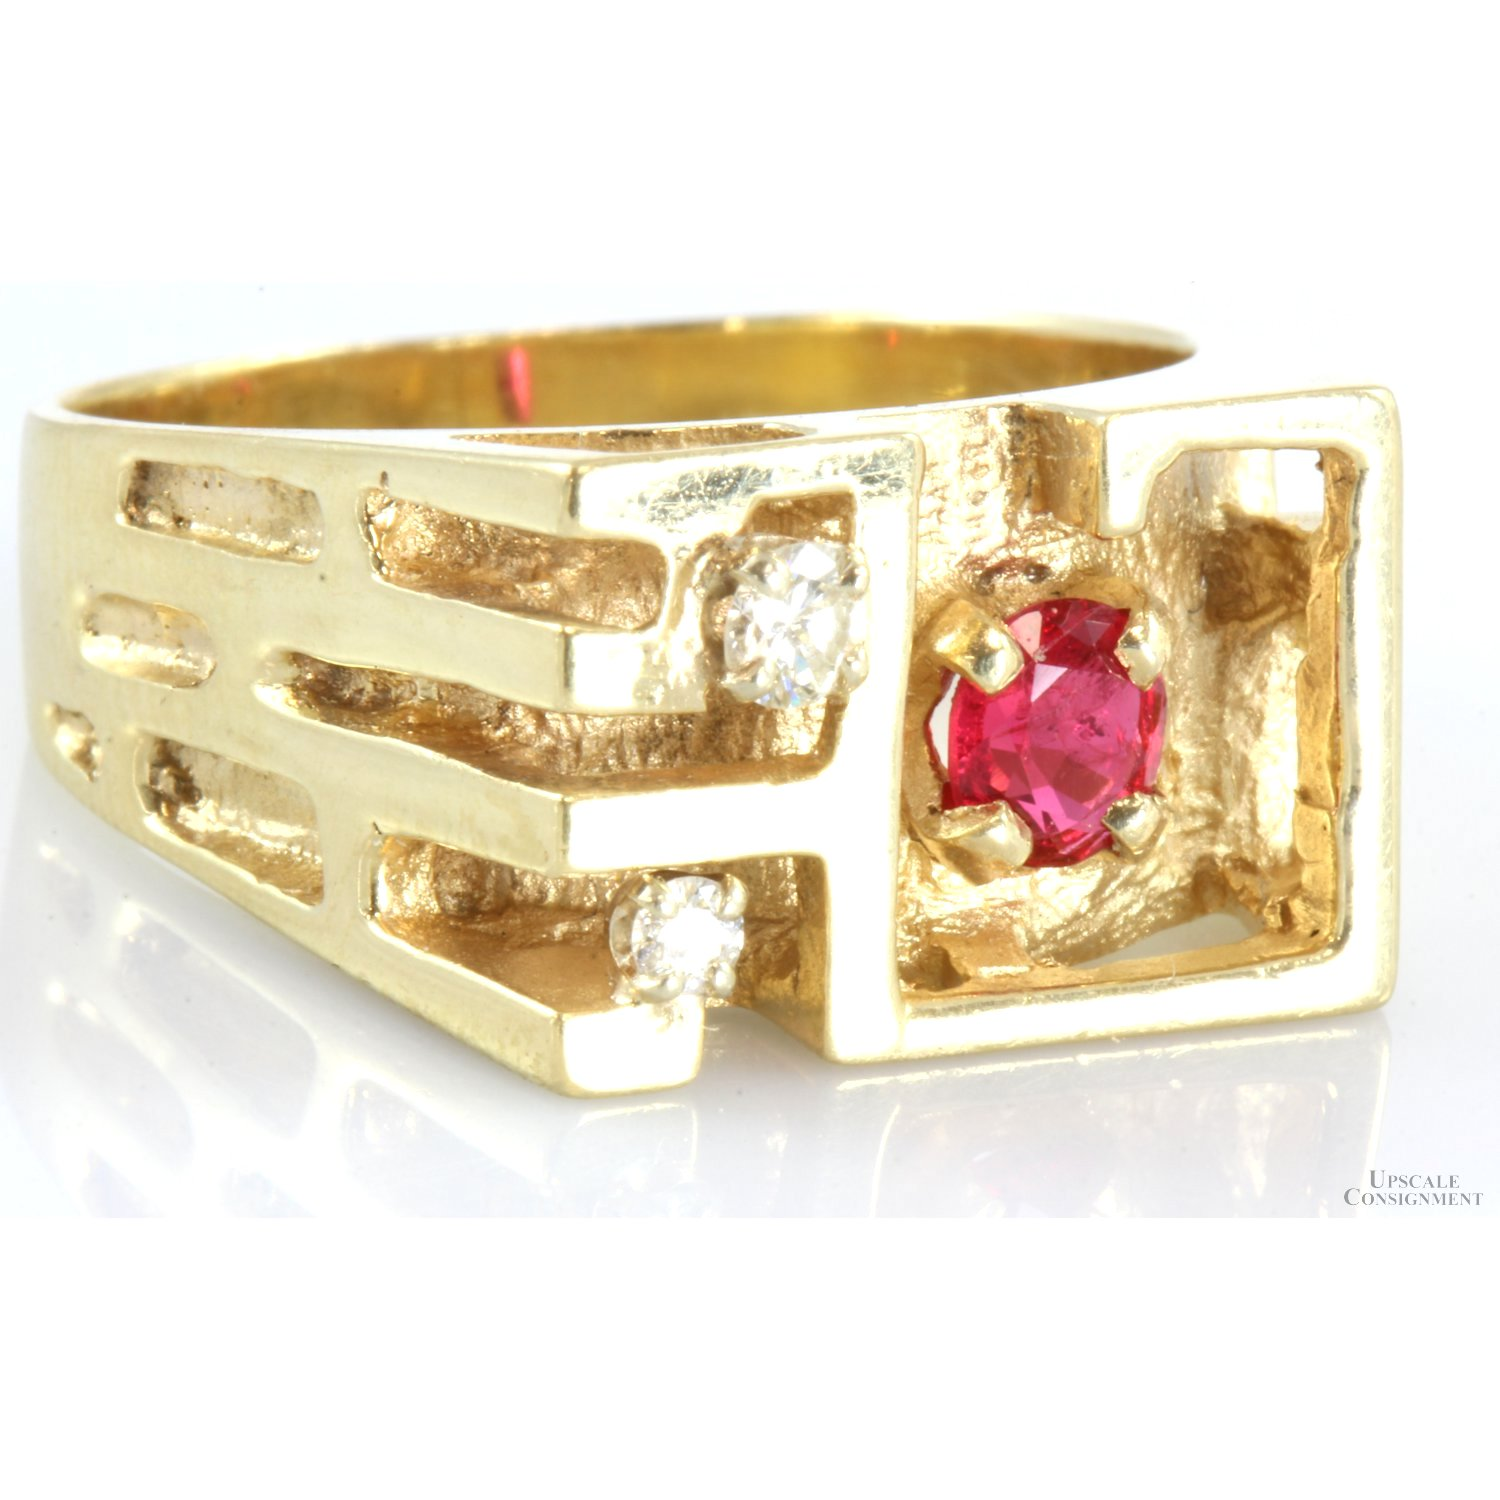 14K-Gold-Lab-Created-.52ct.-Red-Spinel-.13ctw-Diamond-Mens-Ring_91886A.jpg